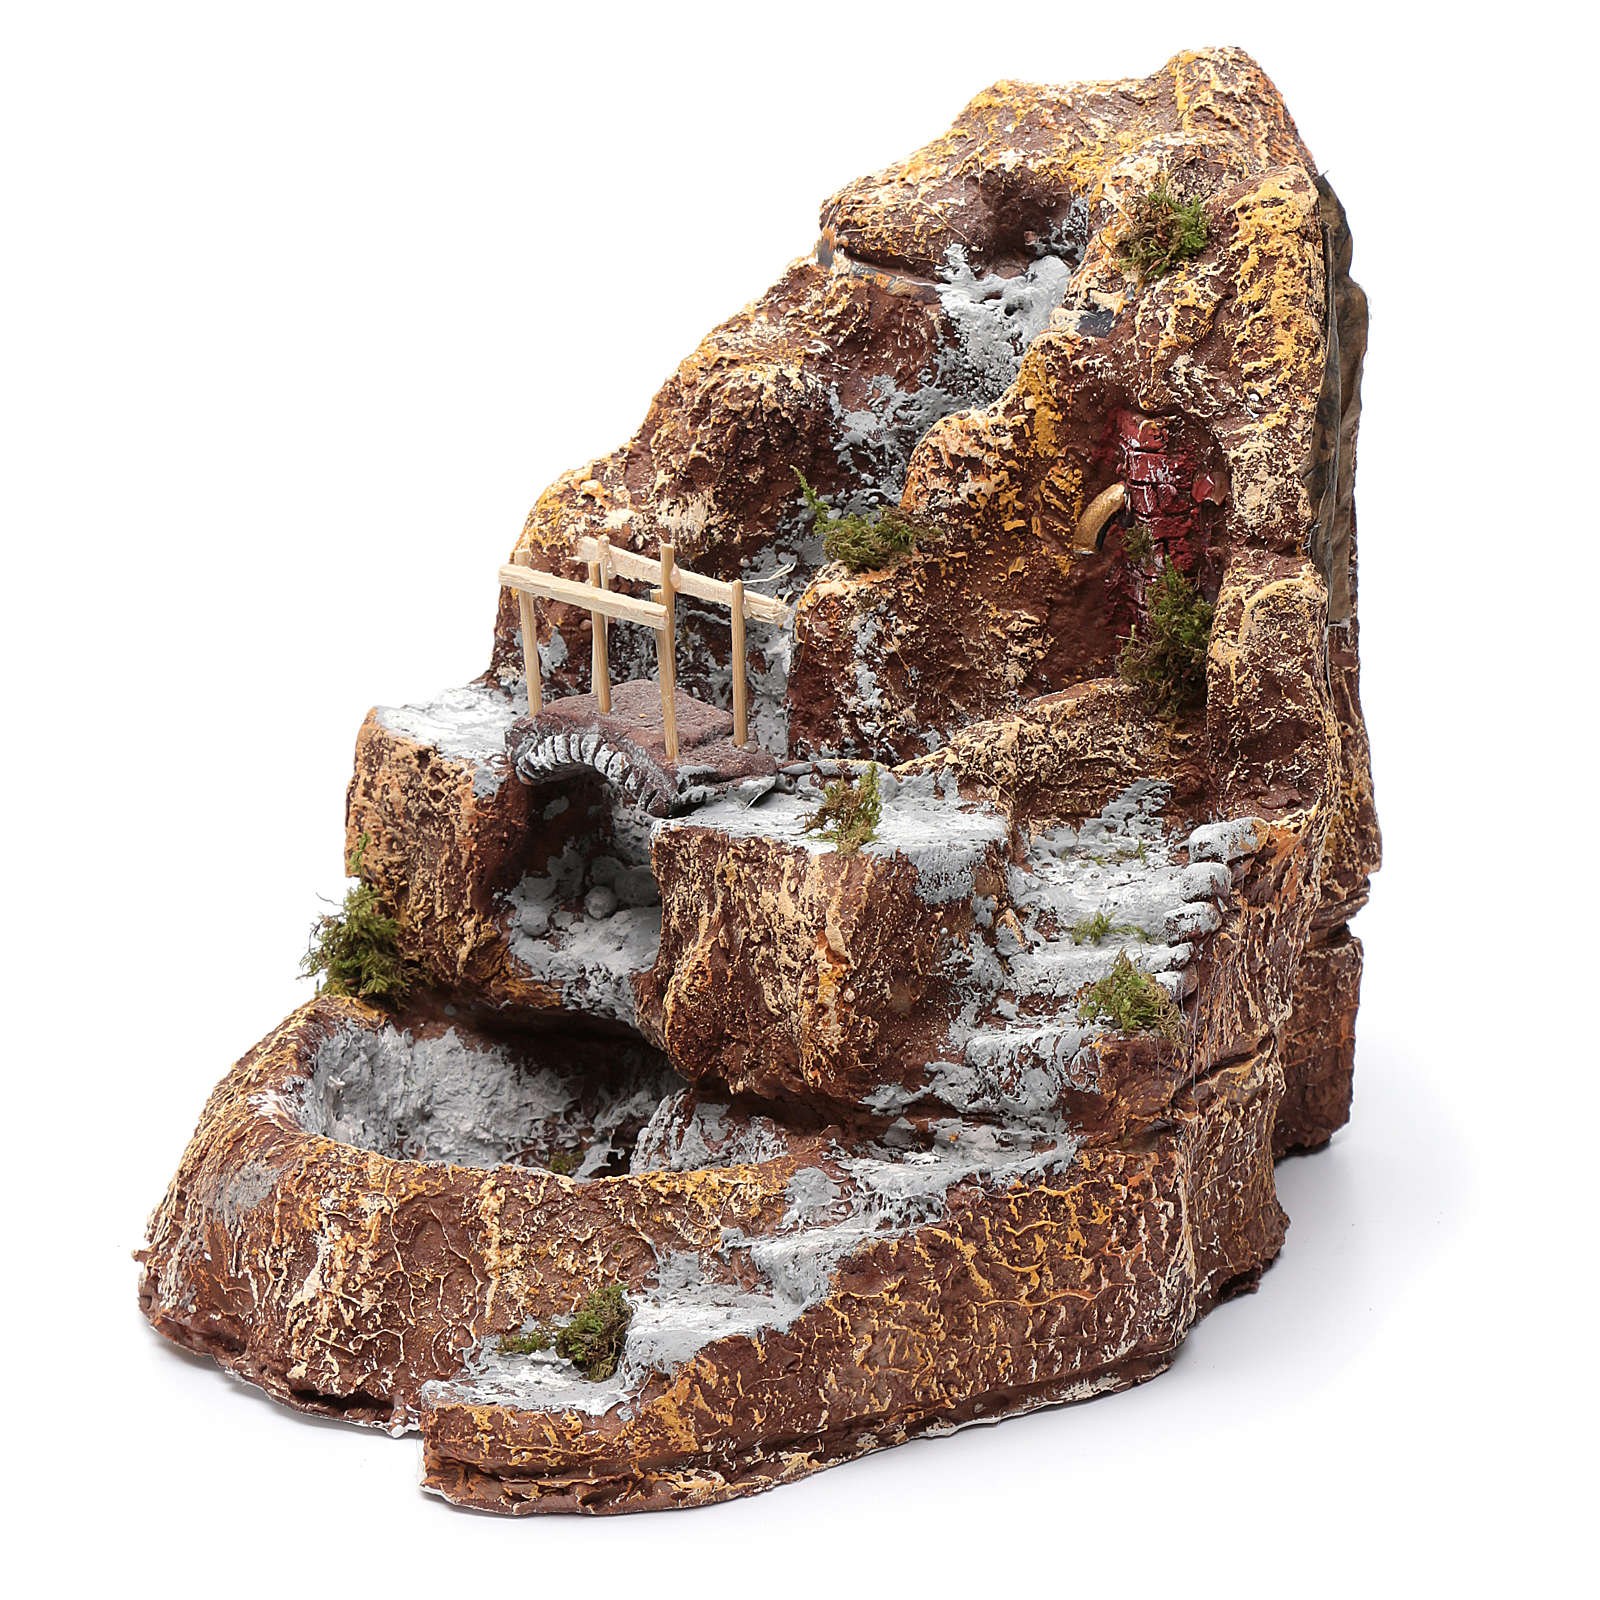 Neapolitan nativity scene stream with bridge and resin stairs 4